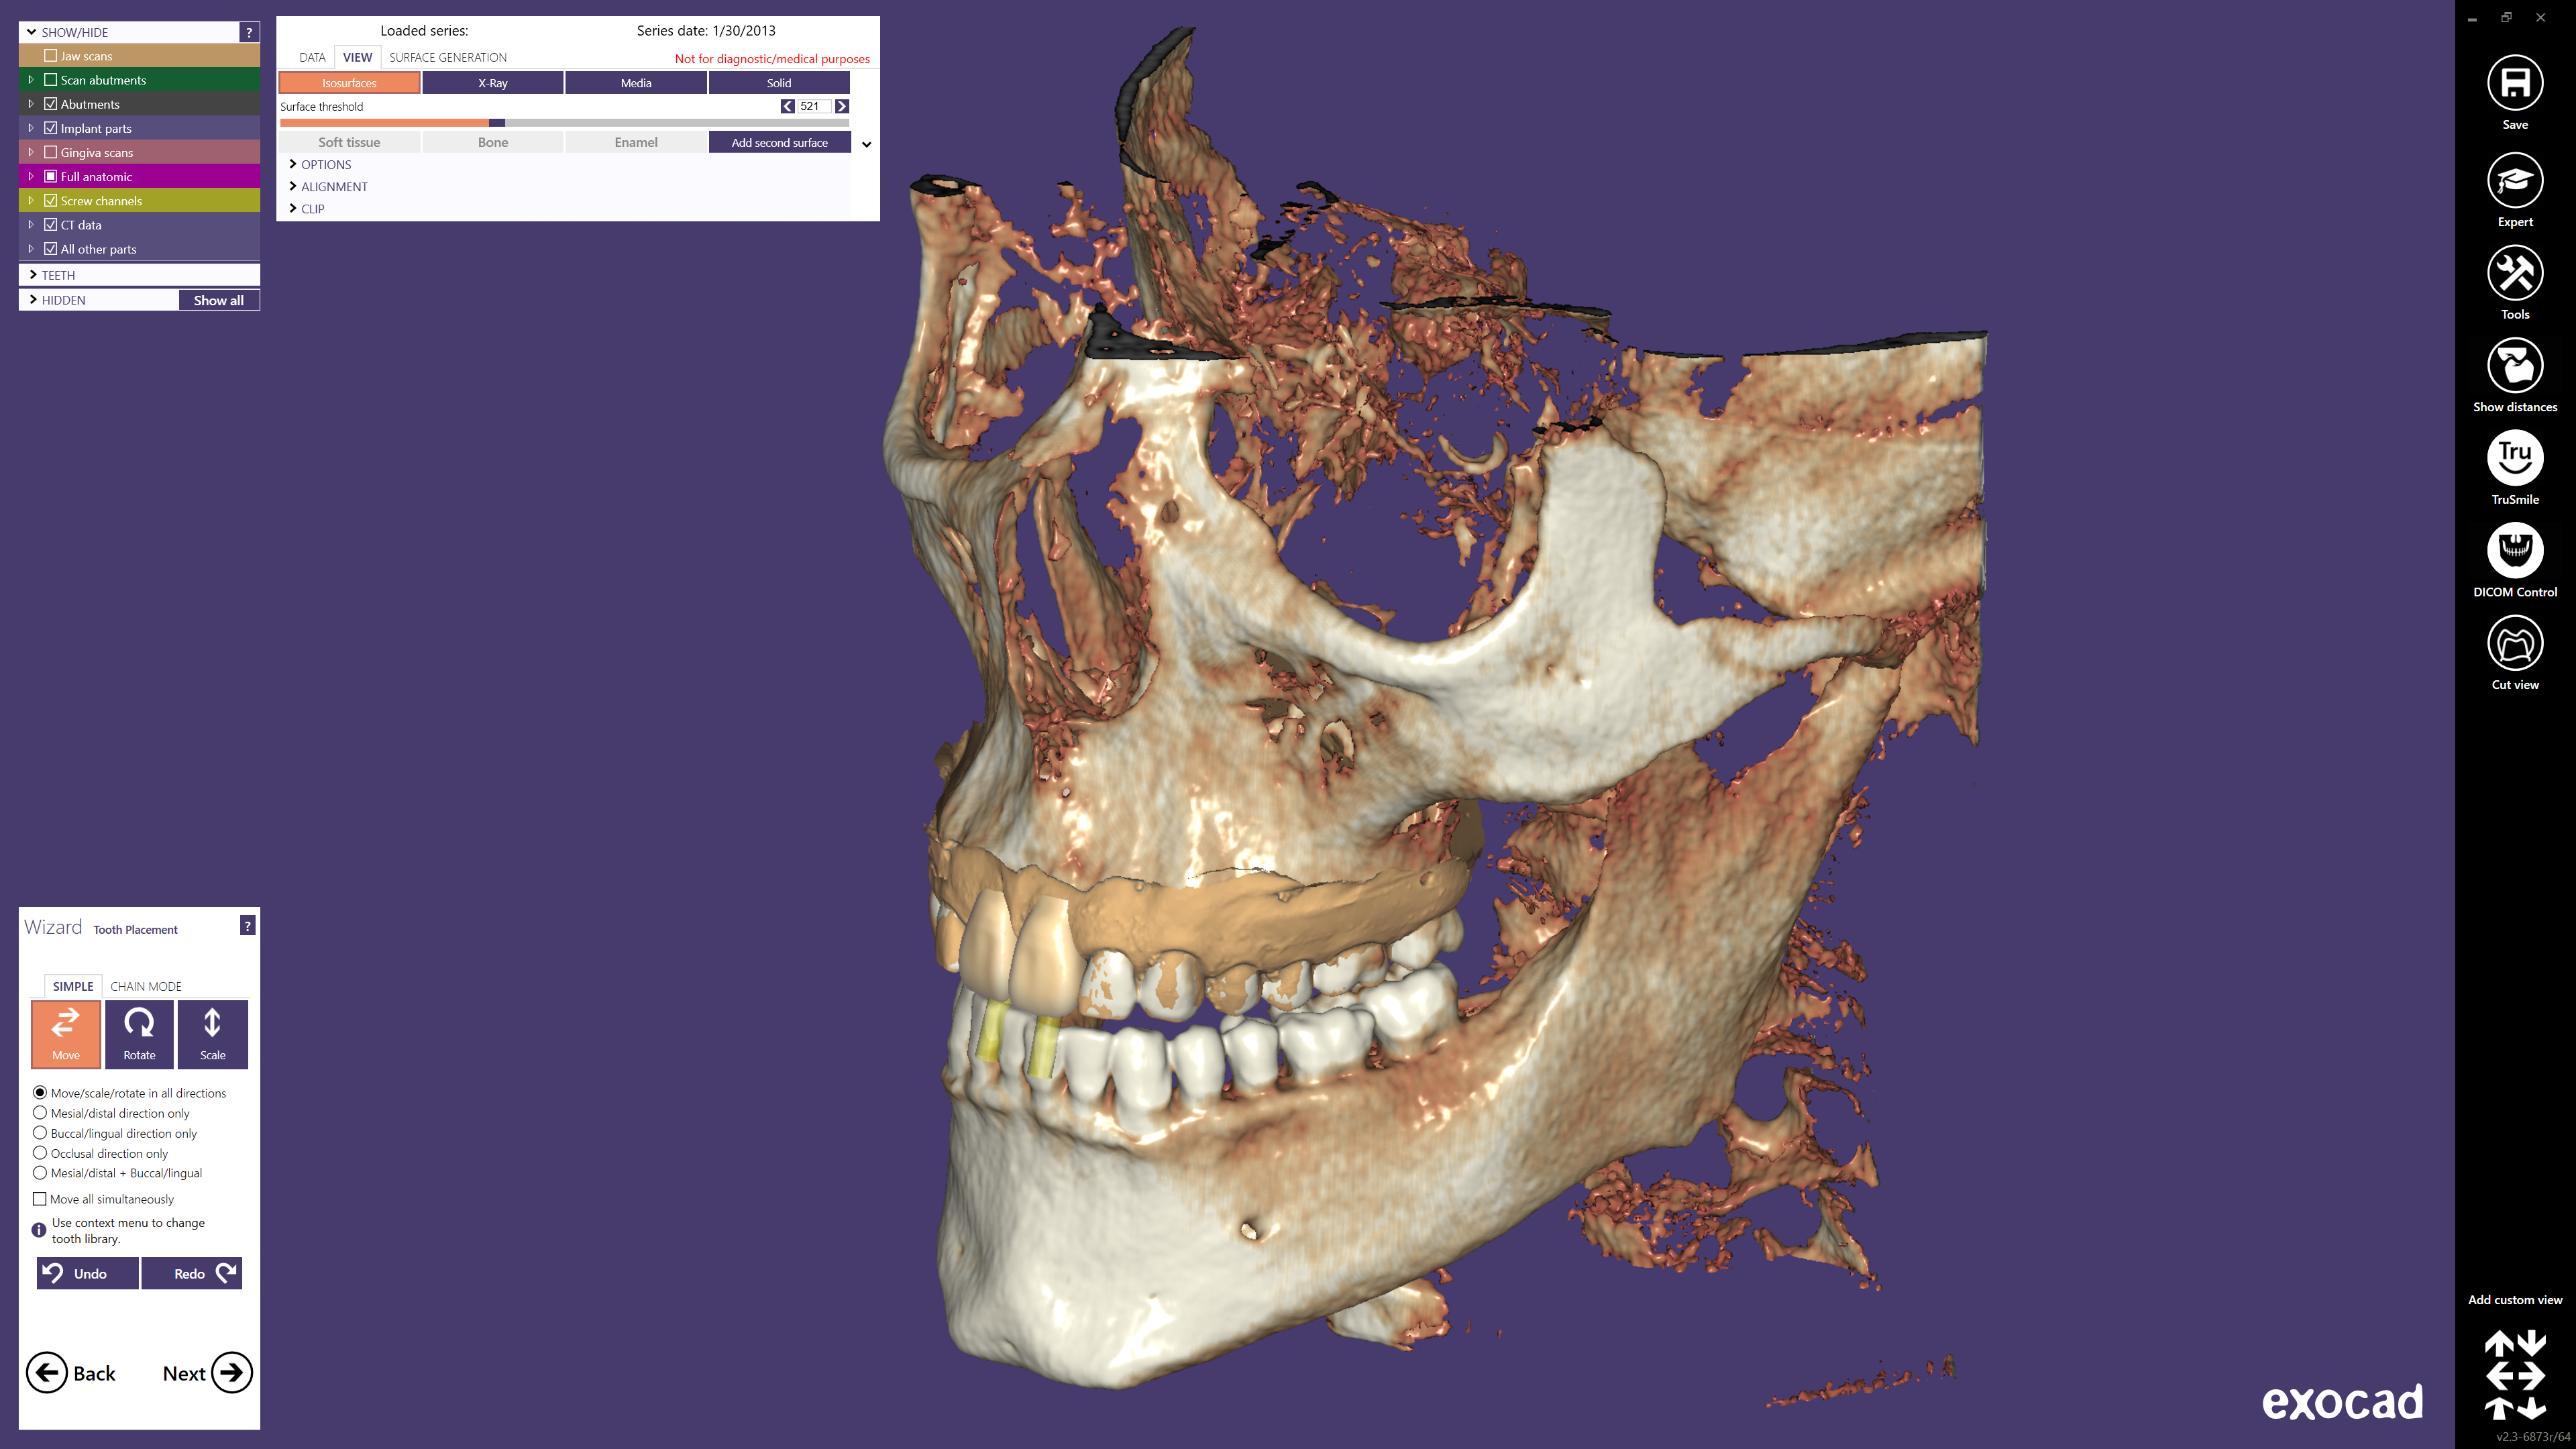 exocad-DentalCAD-Page-26-DICOM-Screen